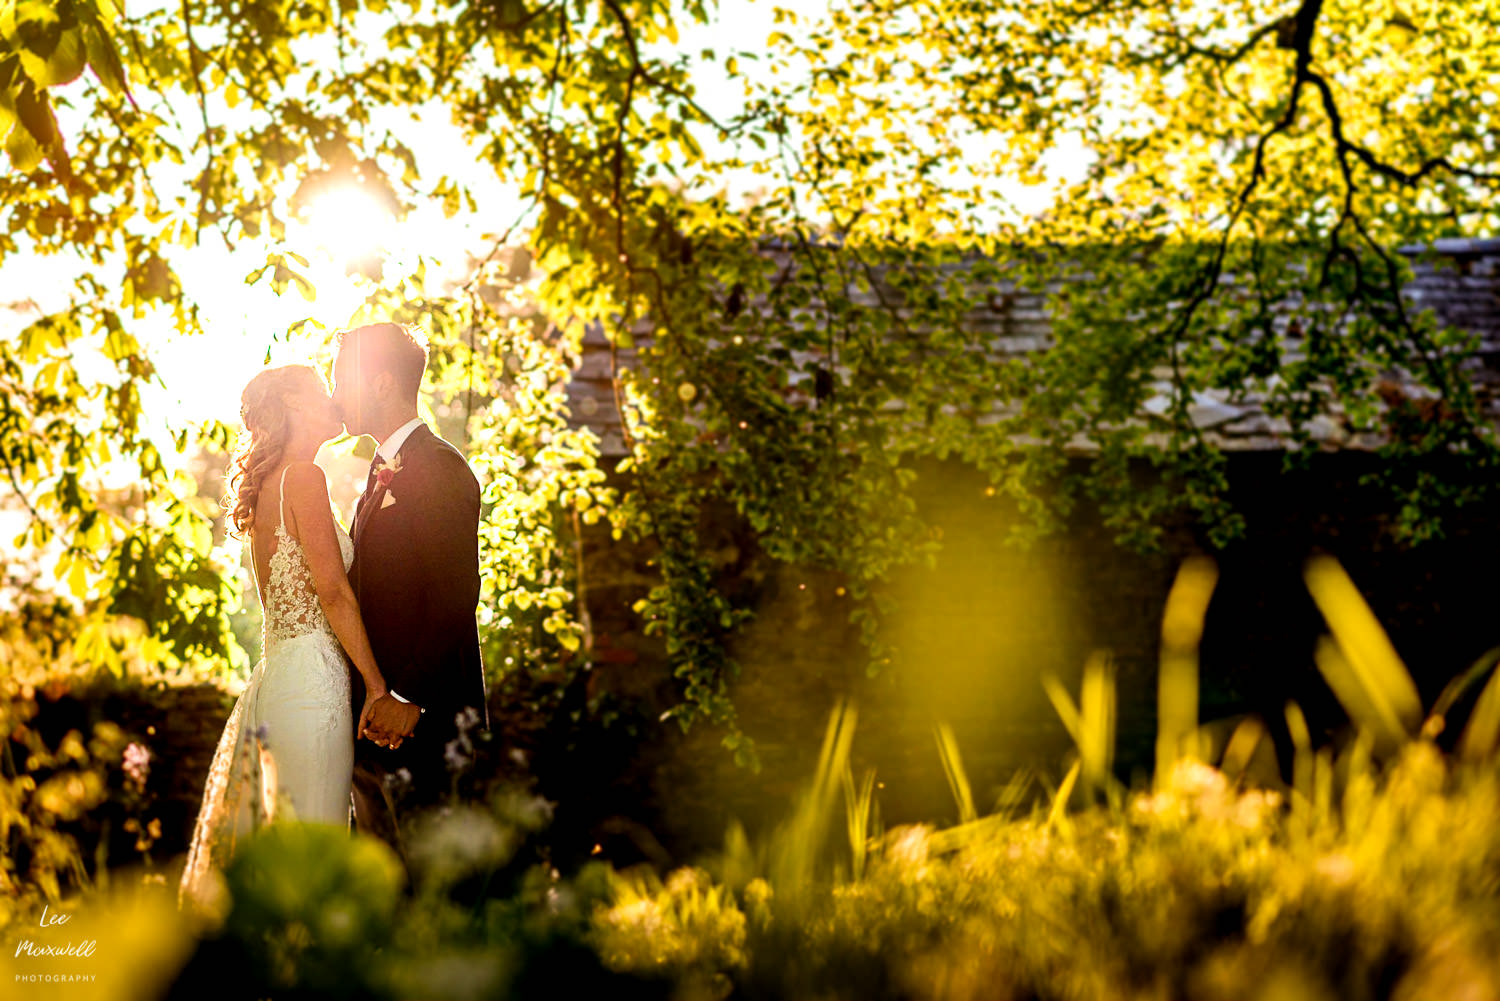 Wedding photography at Launcells Barton, Cornwall